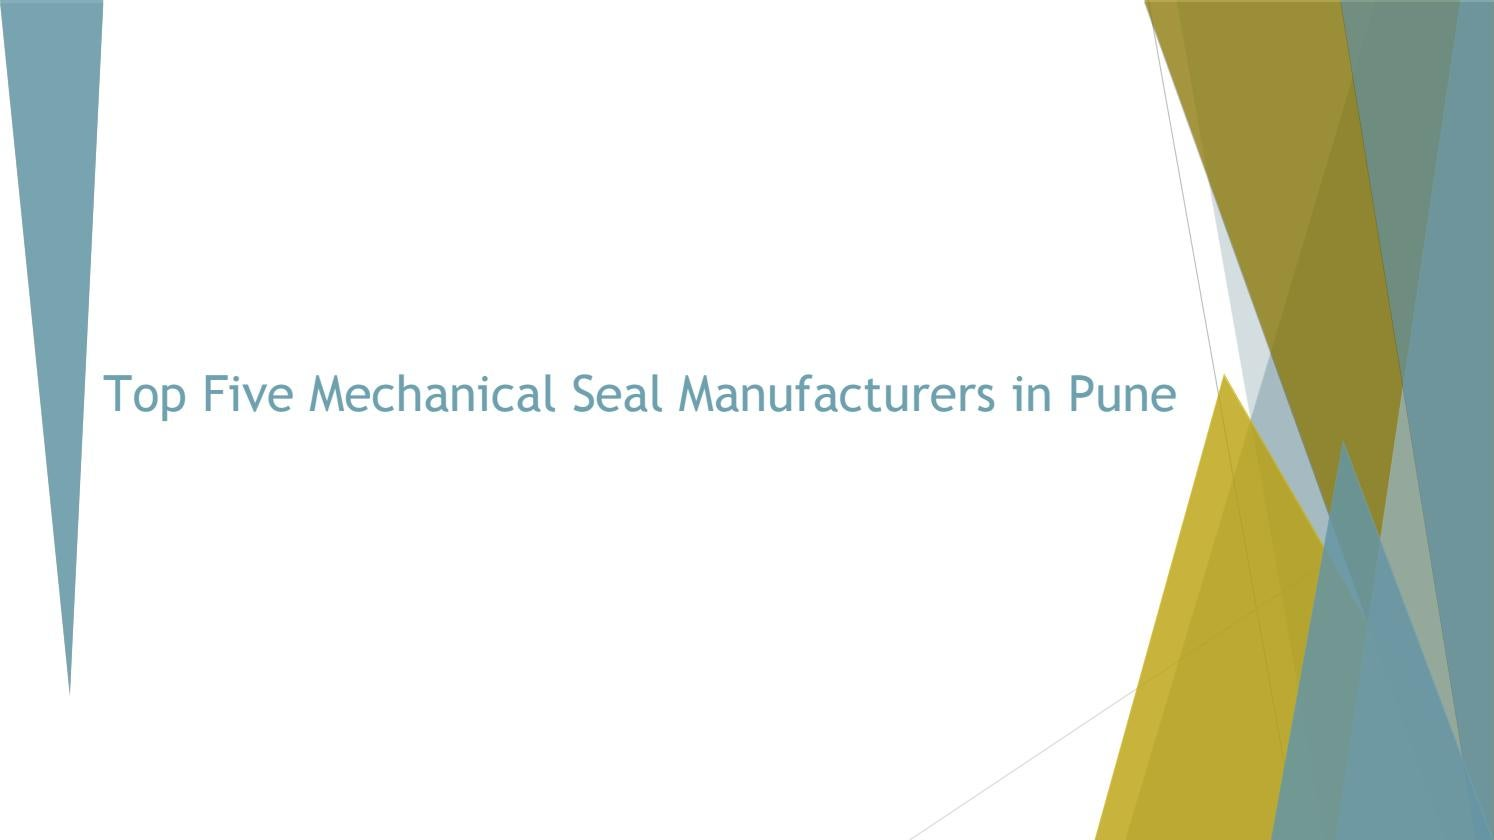 Top five mechanical seal manufacturers in pune by leak-pack